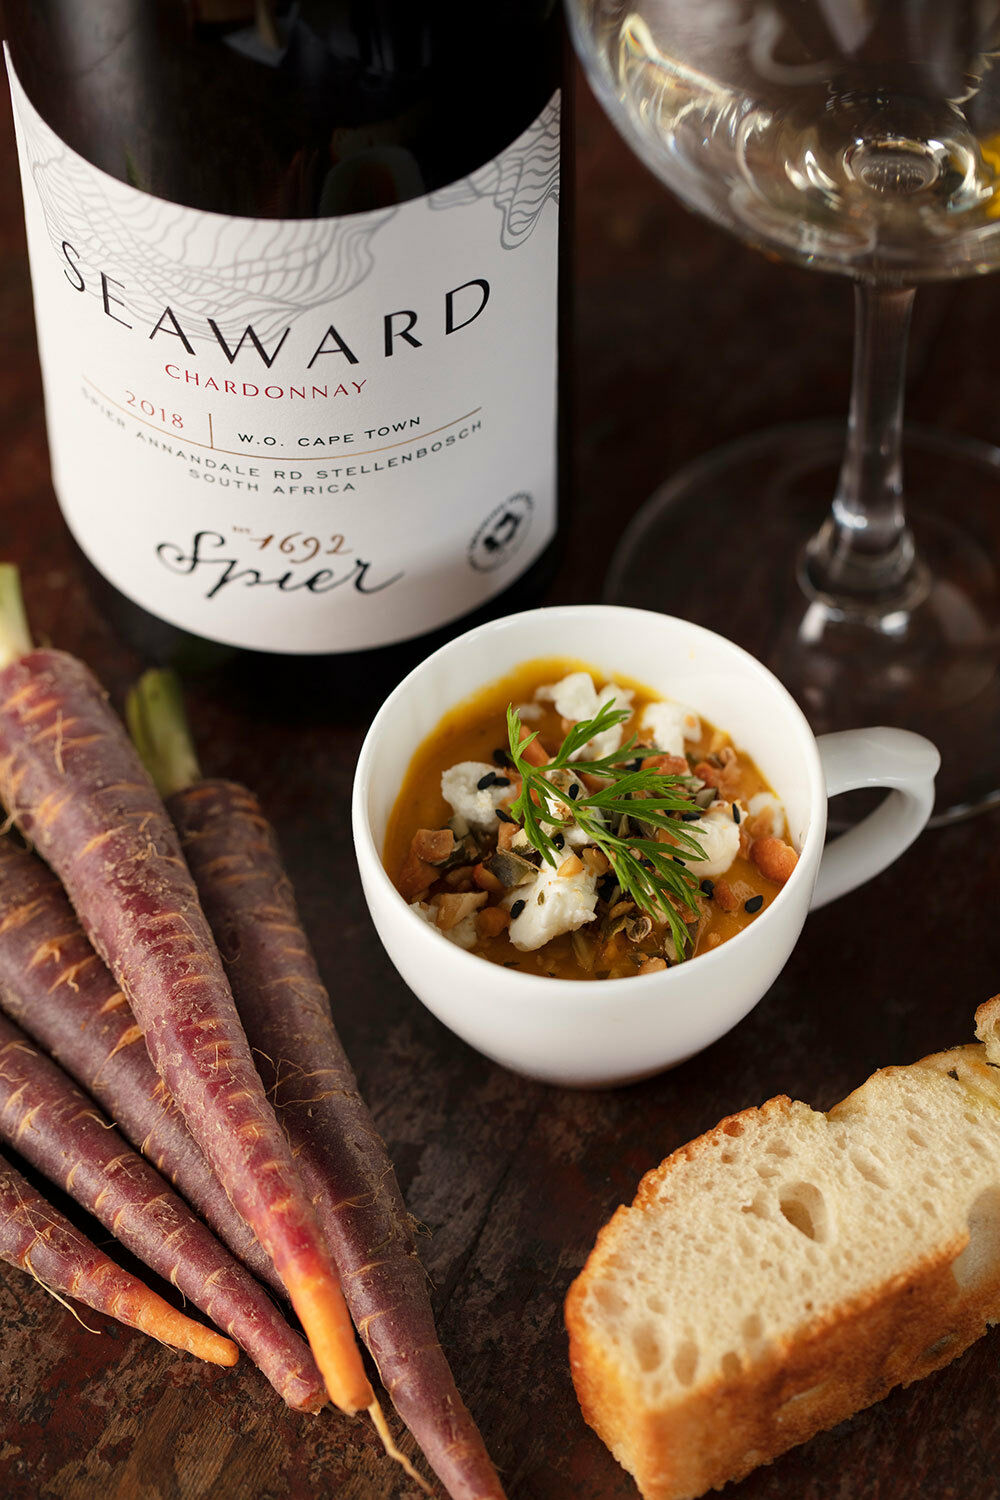 Carrot Soup with Spier Seaward Chardonnay